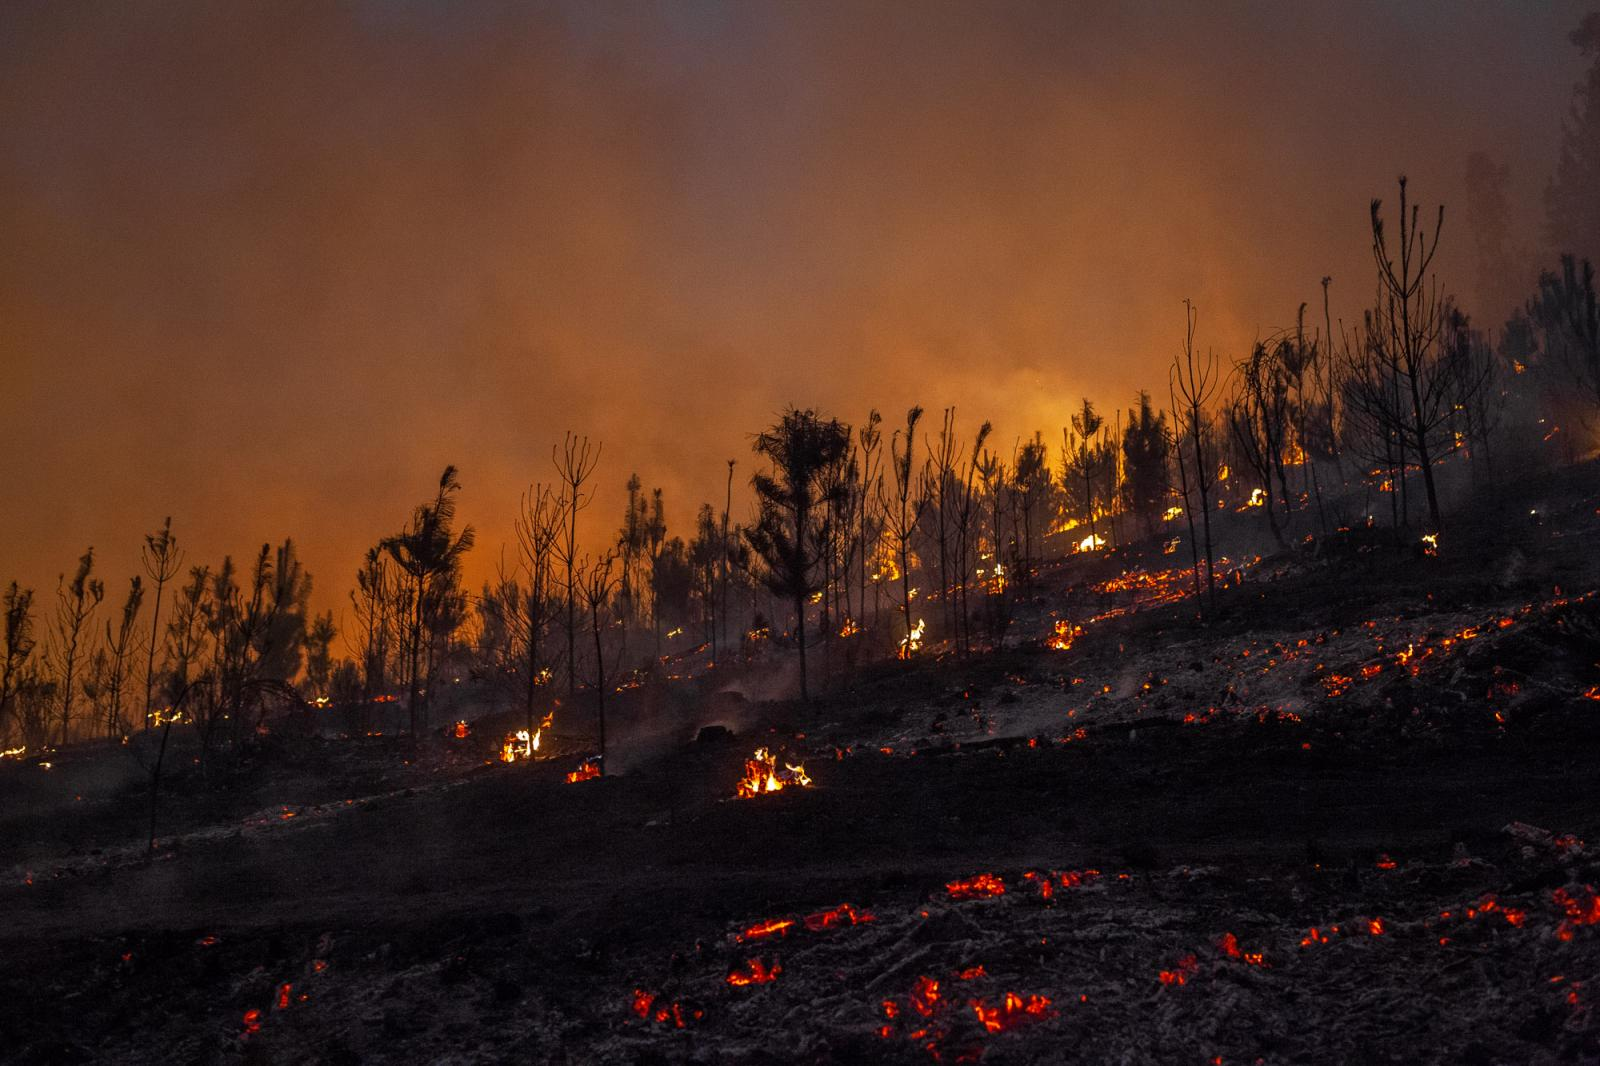 A forest fire near Bio Bio Region. Several forest company uses to burn their forest in order to renew their production, often they goes out of control causing huge impact in the environment and nearest towns, often most of them Mapuche communities. January, 2017. Between Maule and Bio-Bio regions. South of Chile.